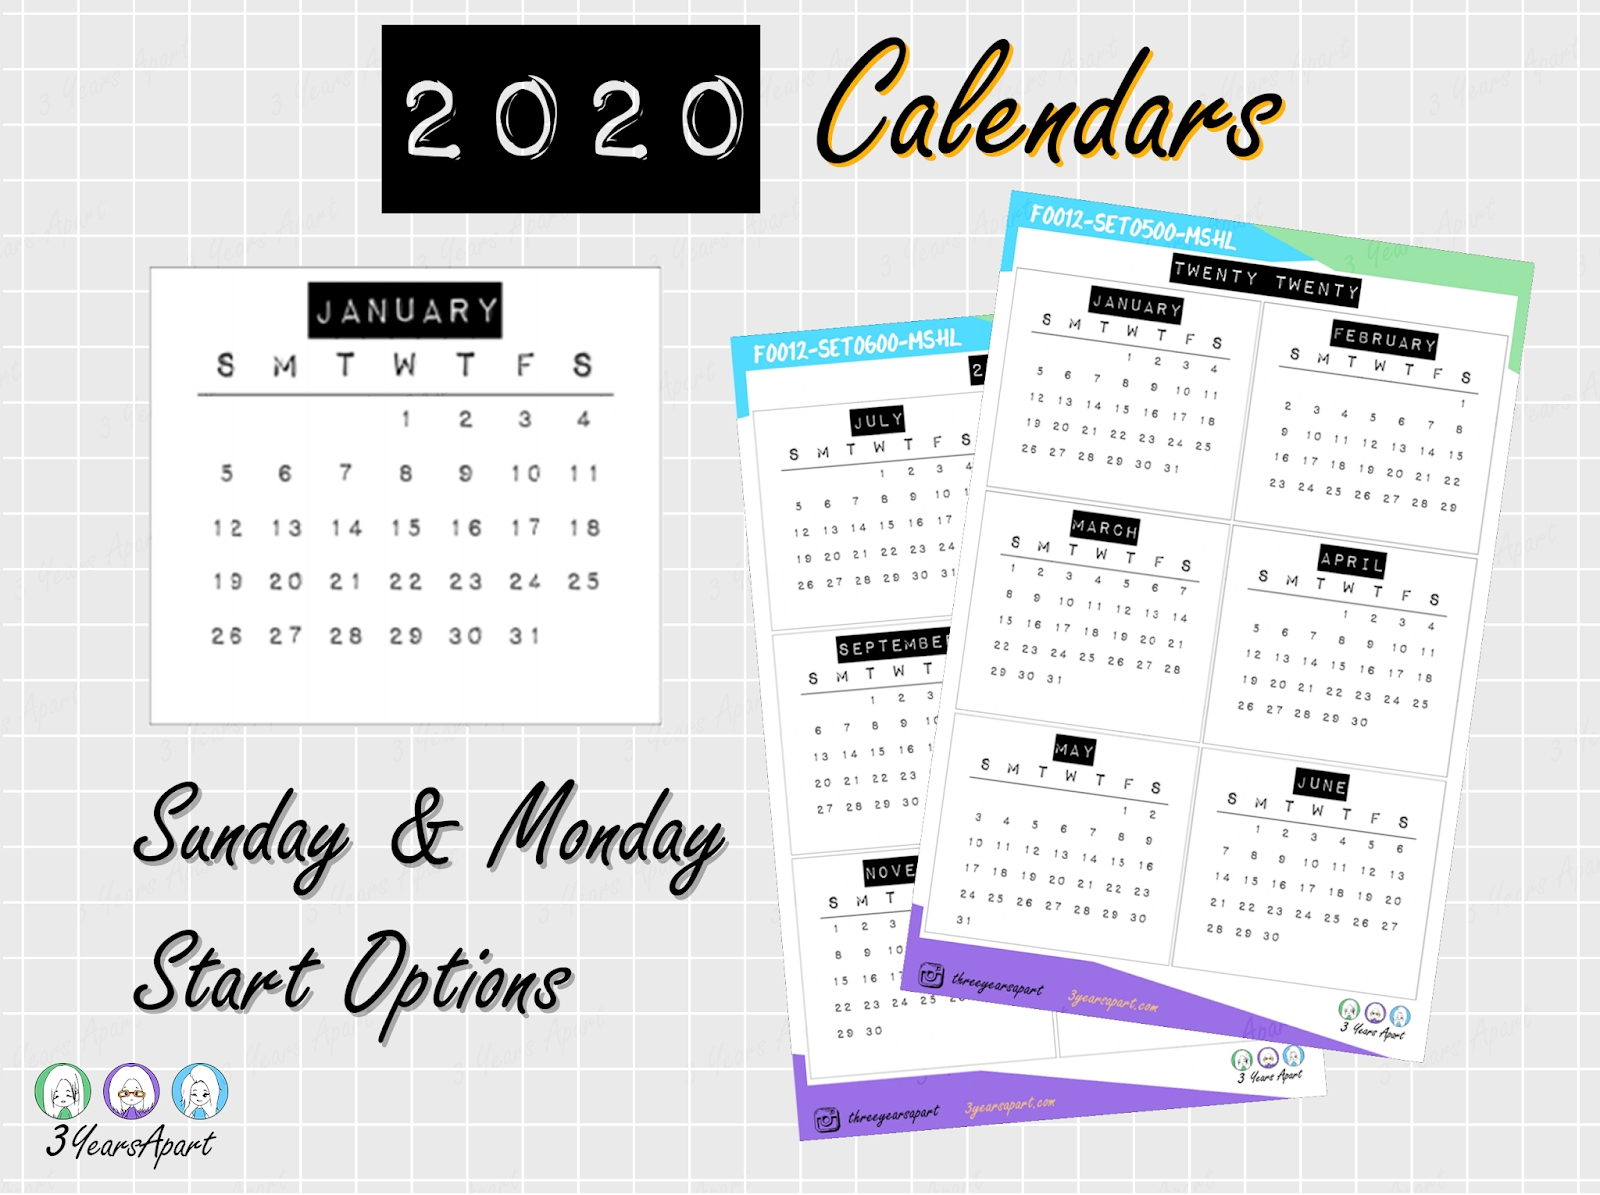 2020 Yearly Calendar Free Printable | Bullet Journal And pertaining to Downloadable 2020 Year At A Glance 2020 Calendar